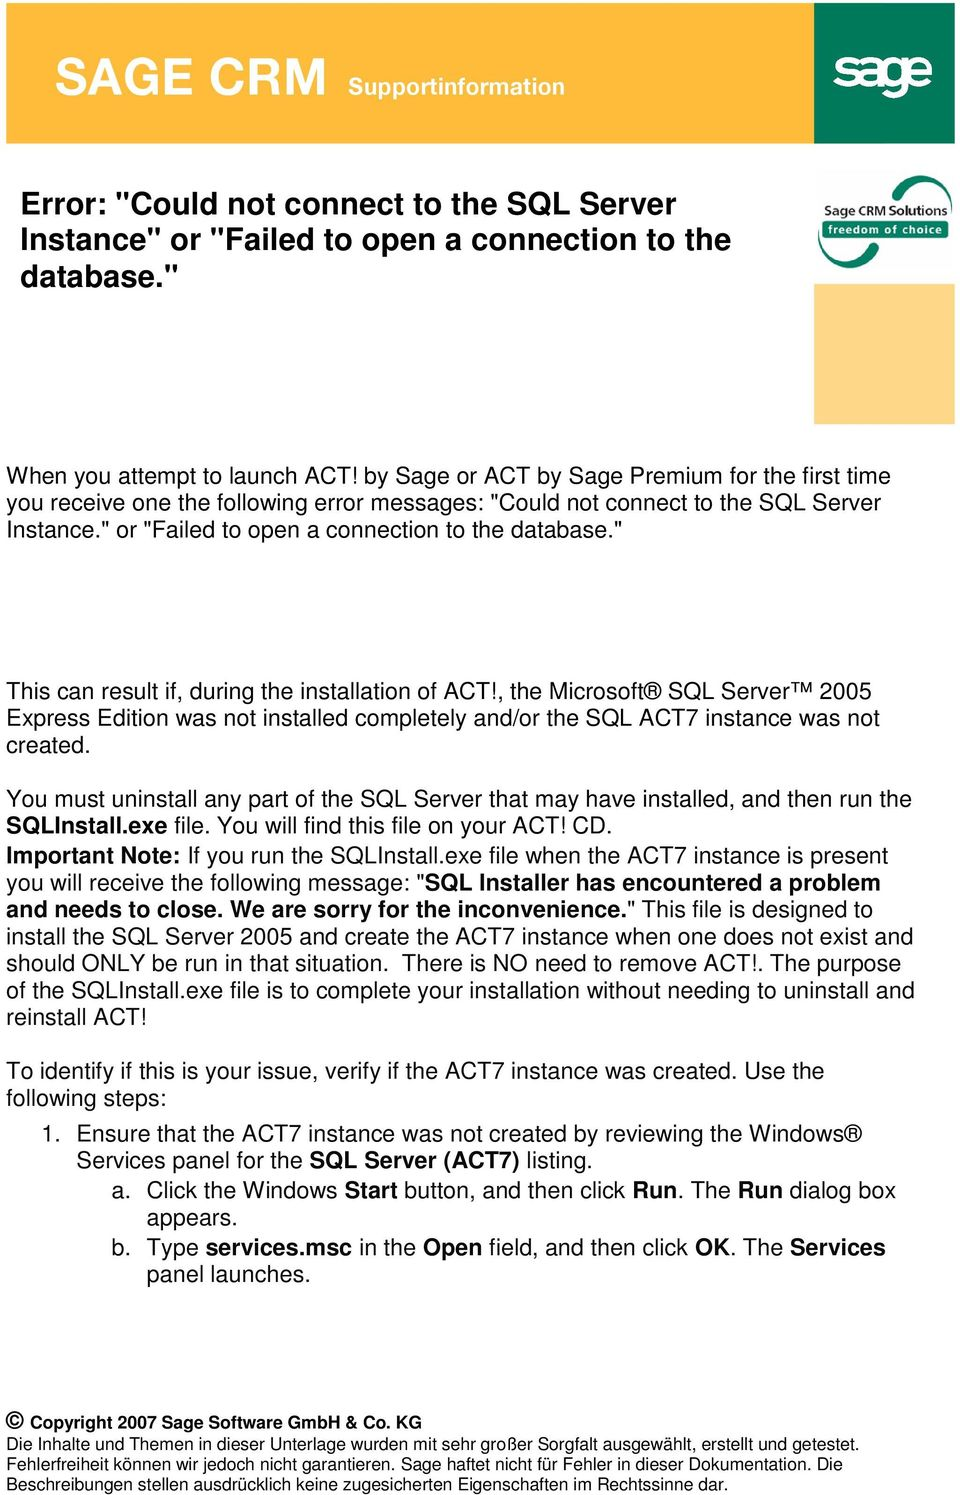 """ This can result if, during the installation of ACT!, the Microsoft SQL Server 2005 Express Edition was not installed completely and/or the SQL ACT7 instance was not created."